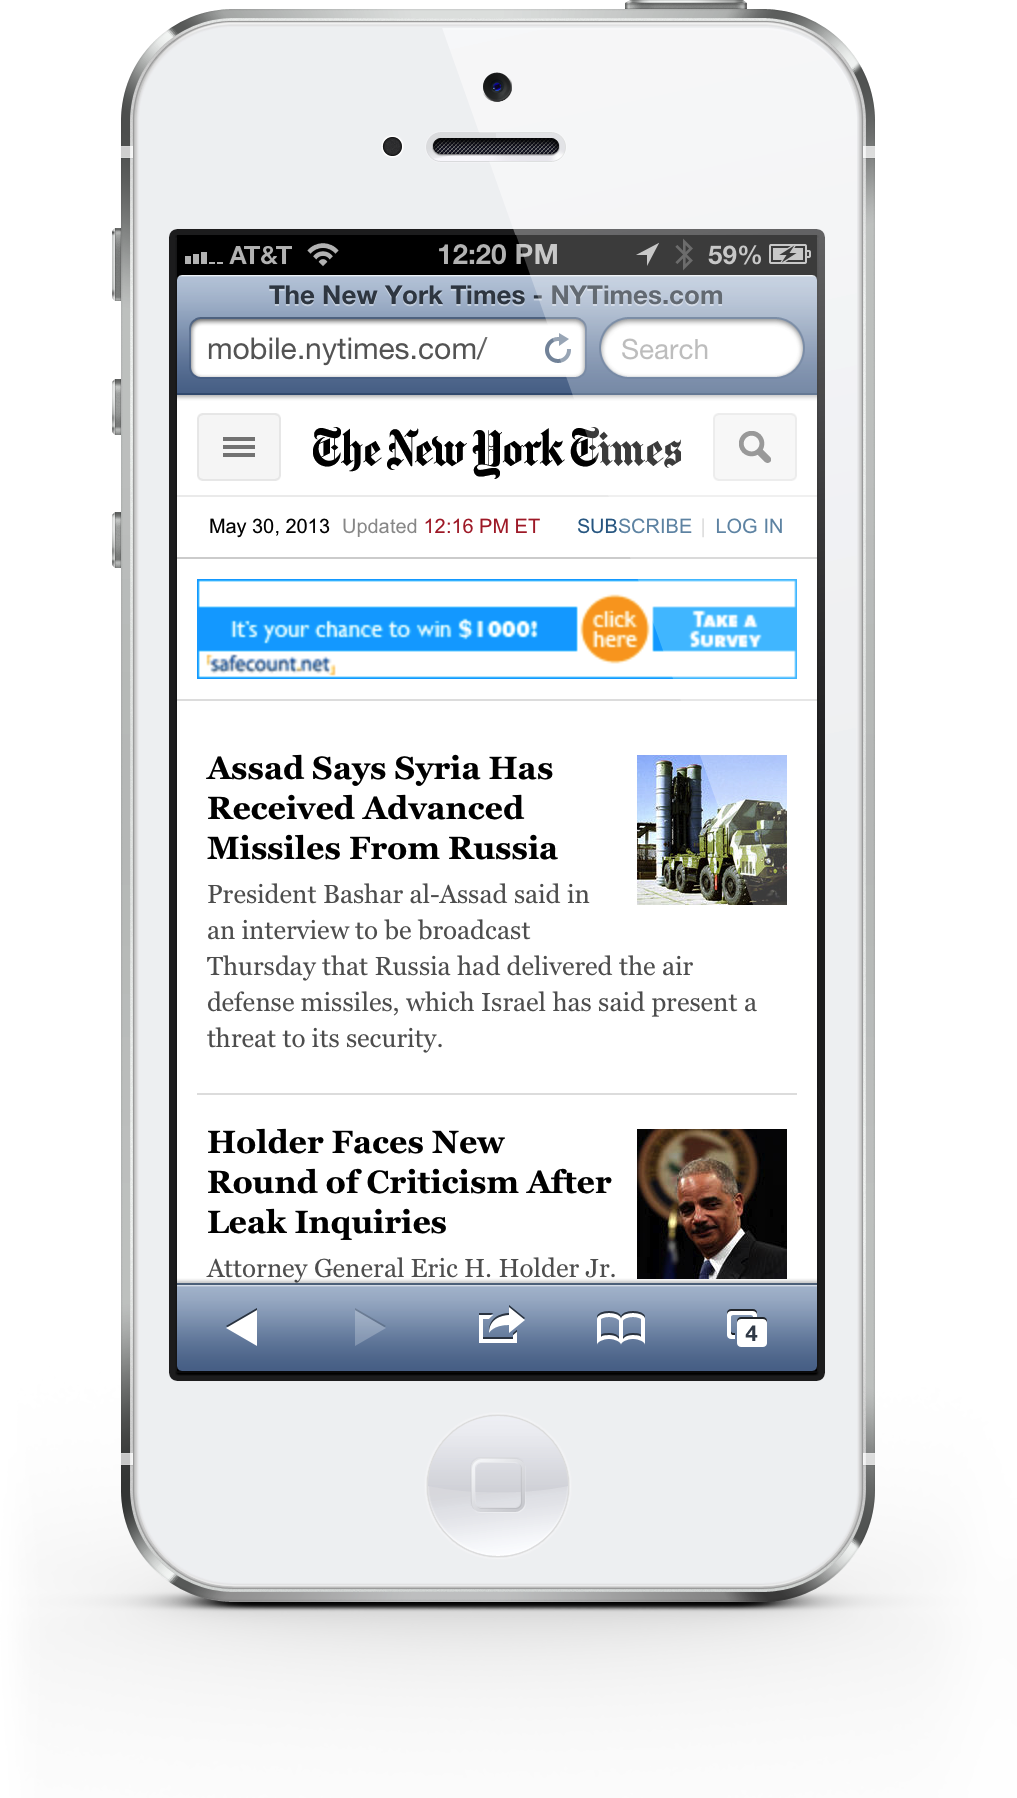 The New York Times Updates Its Mobile Website For First Time In Seven Years